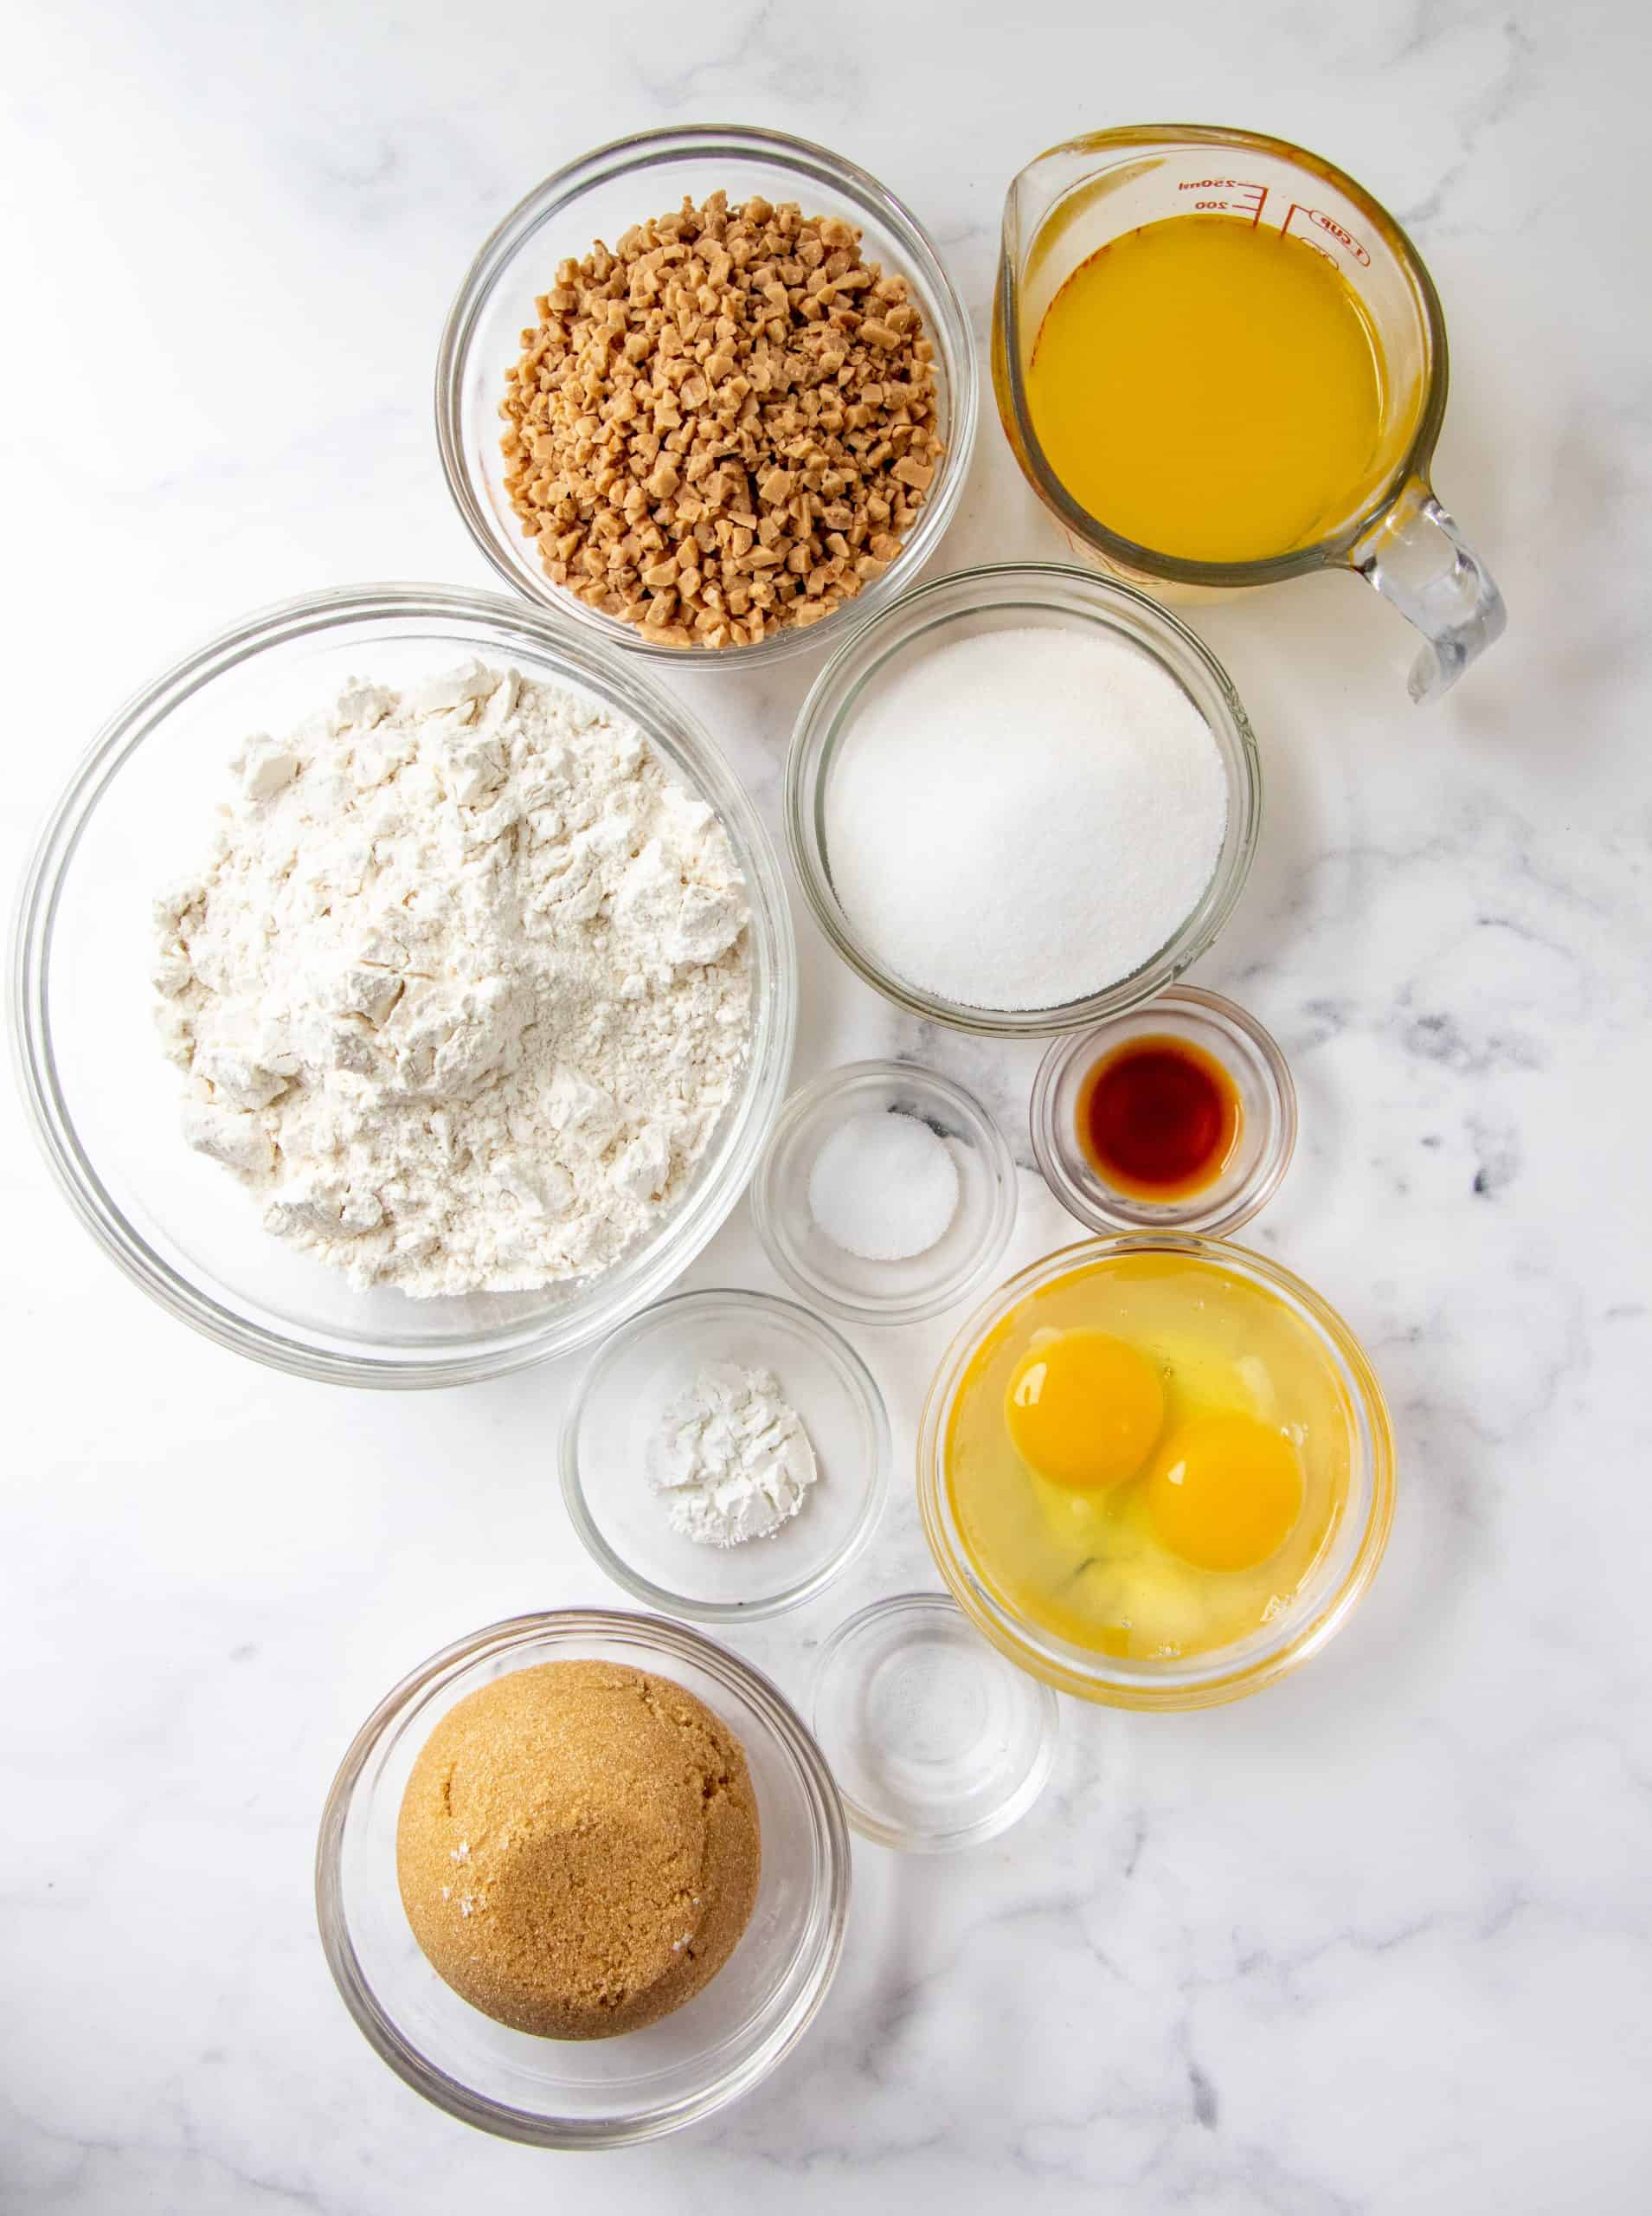 all-purpose flour, baking powder, salt, unsalted, light brown sugar, sugar, large eggs, vanilla extract, rum extract, toffee bits.